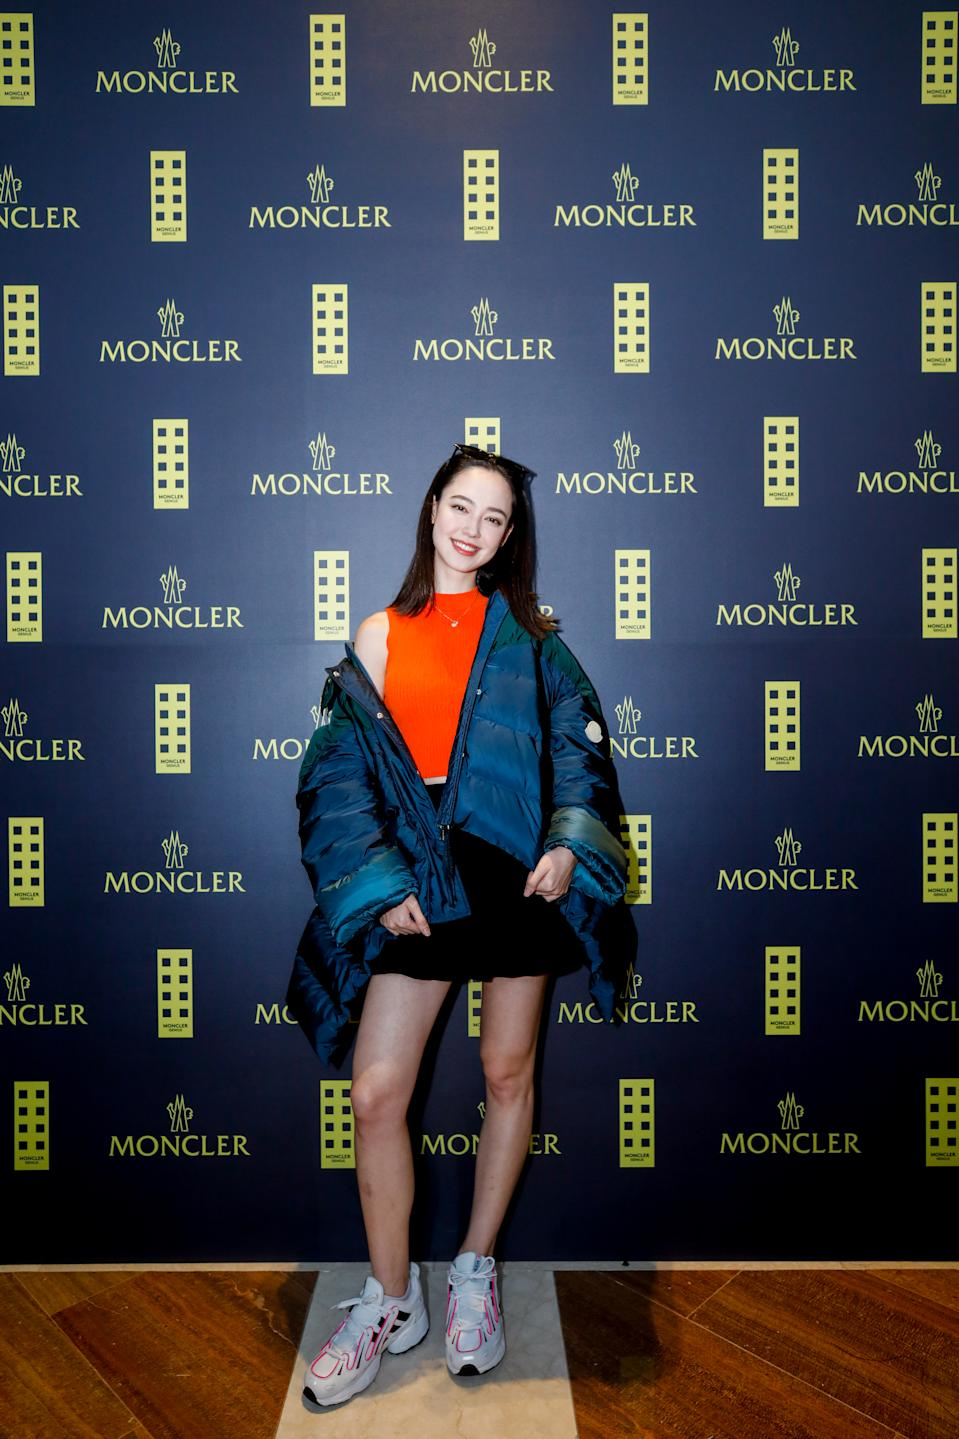 Fiona Fussi at Moncler Launch. (PHOTO: Moncler)